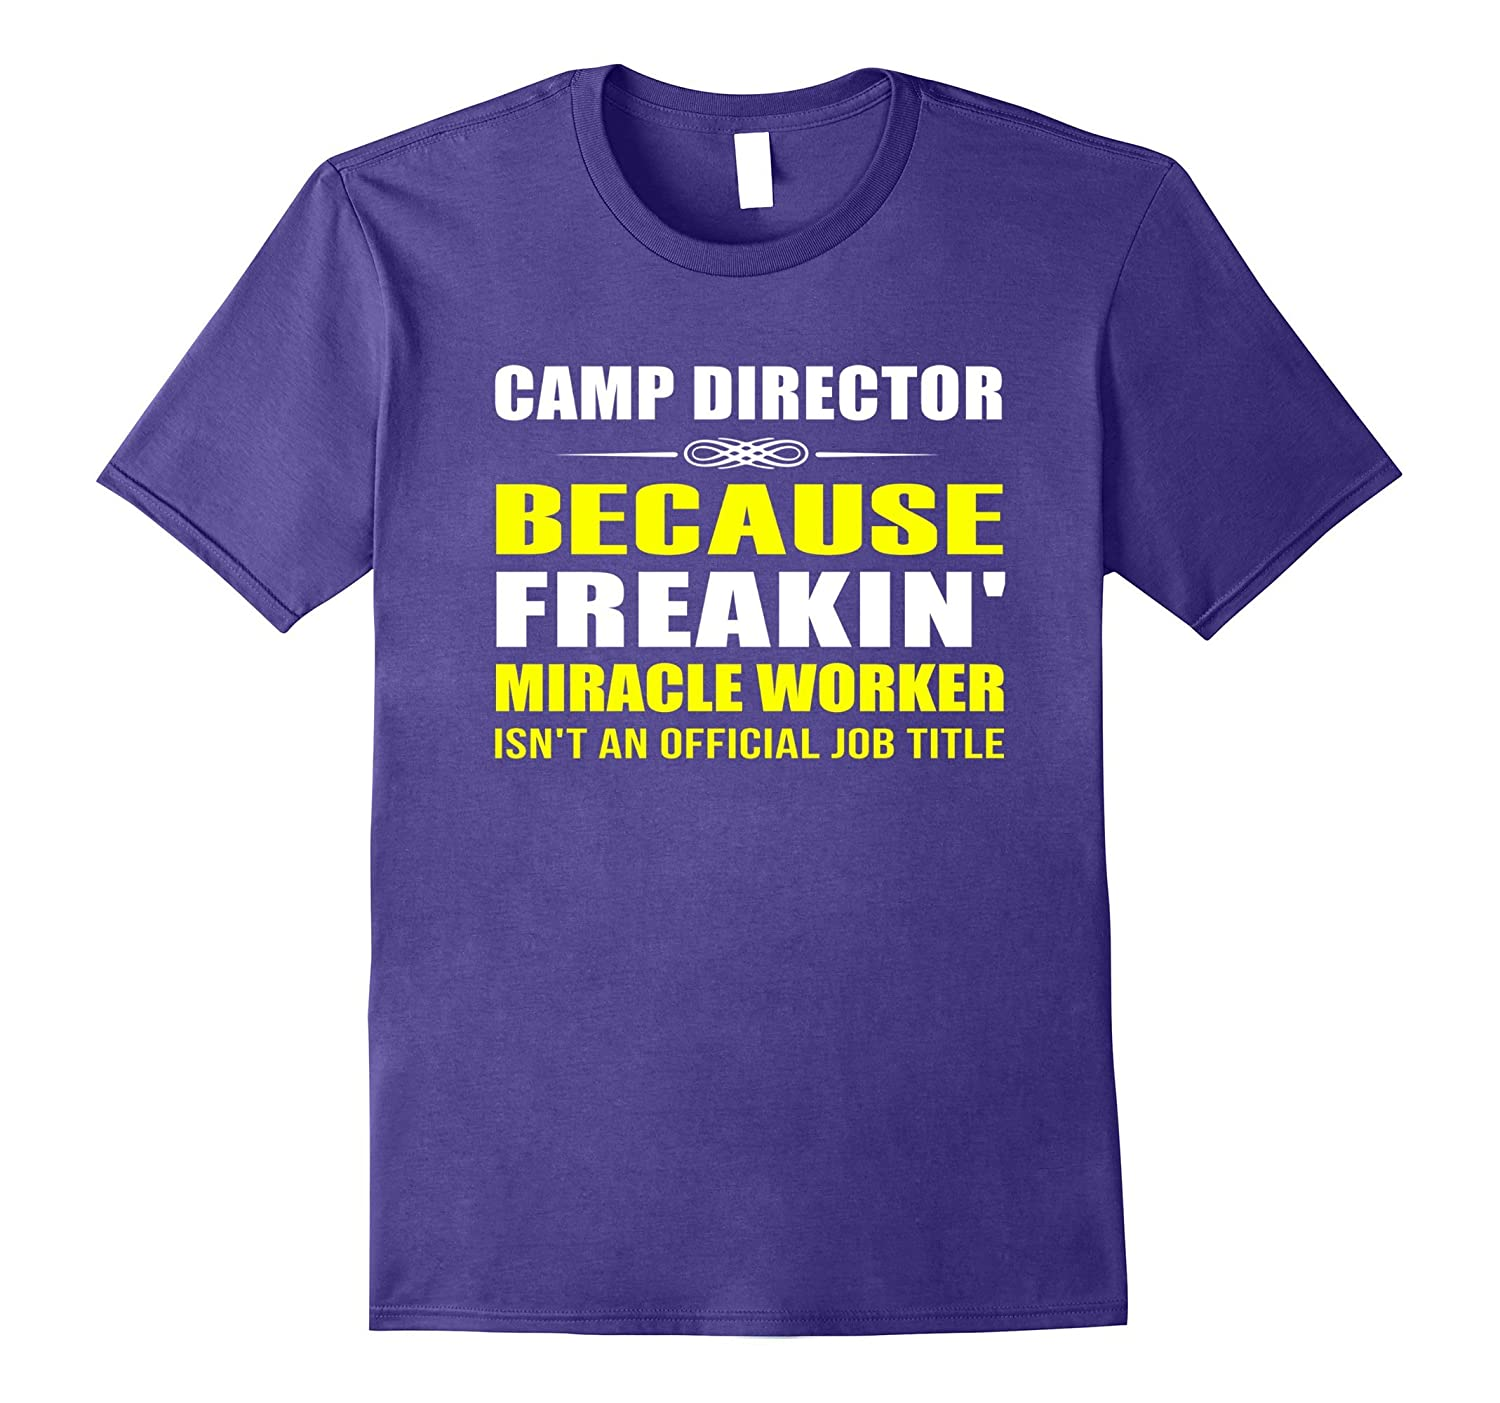 Camp Director Because Freakin Miracle Worker Job Title Shirt-TJ